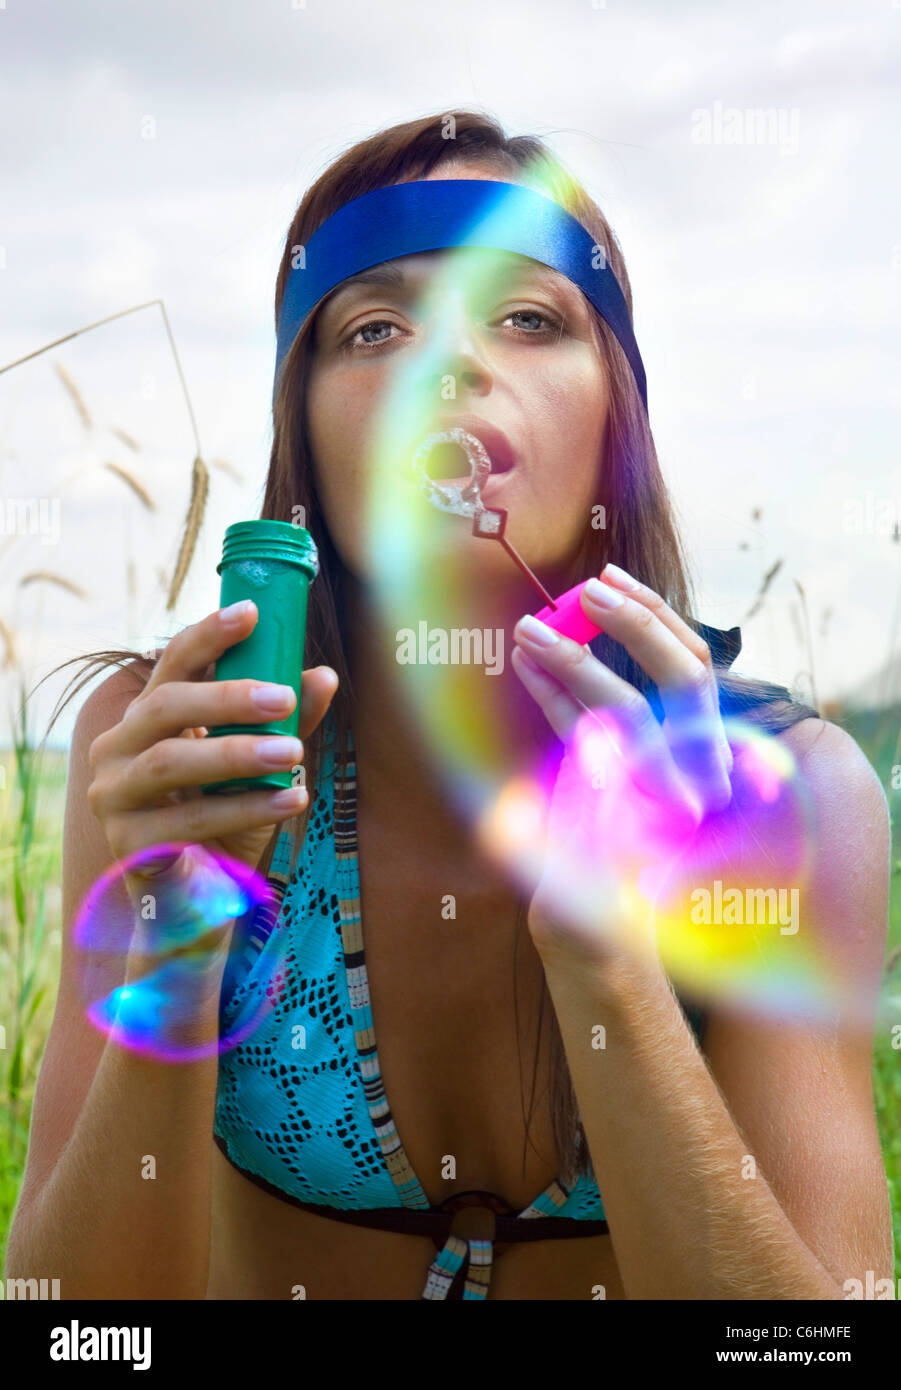 wistful young woman blowing soap bubbles at summer - Stock Image